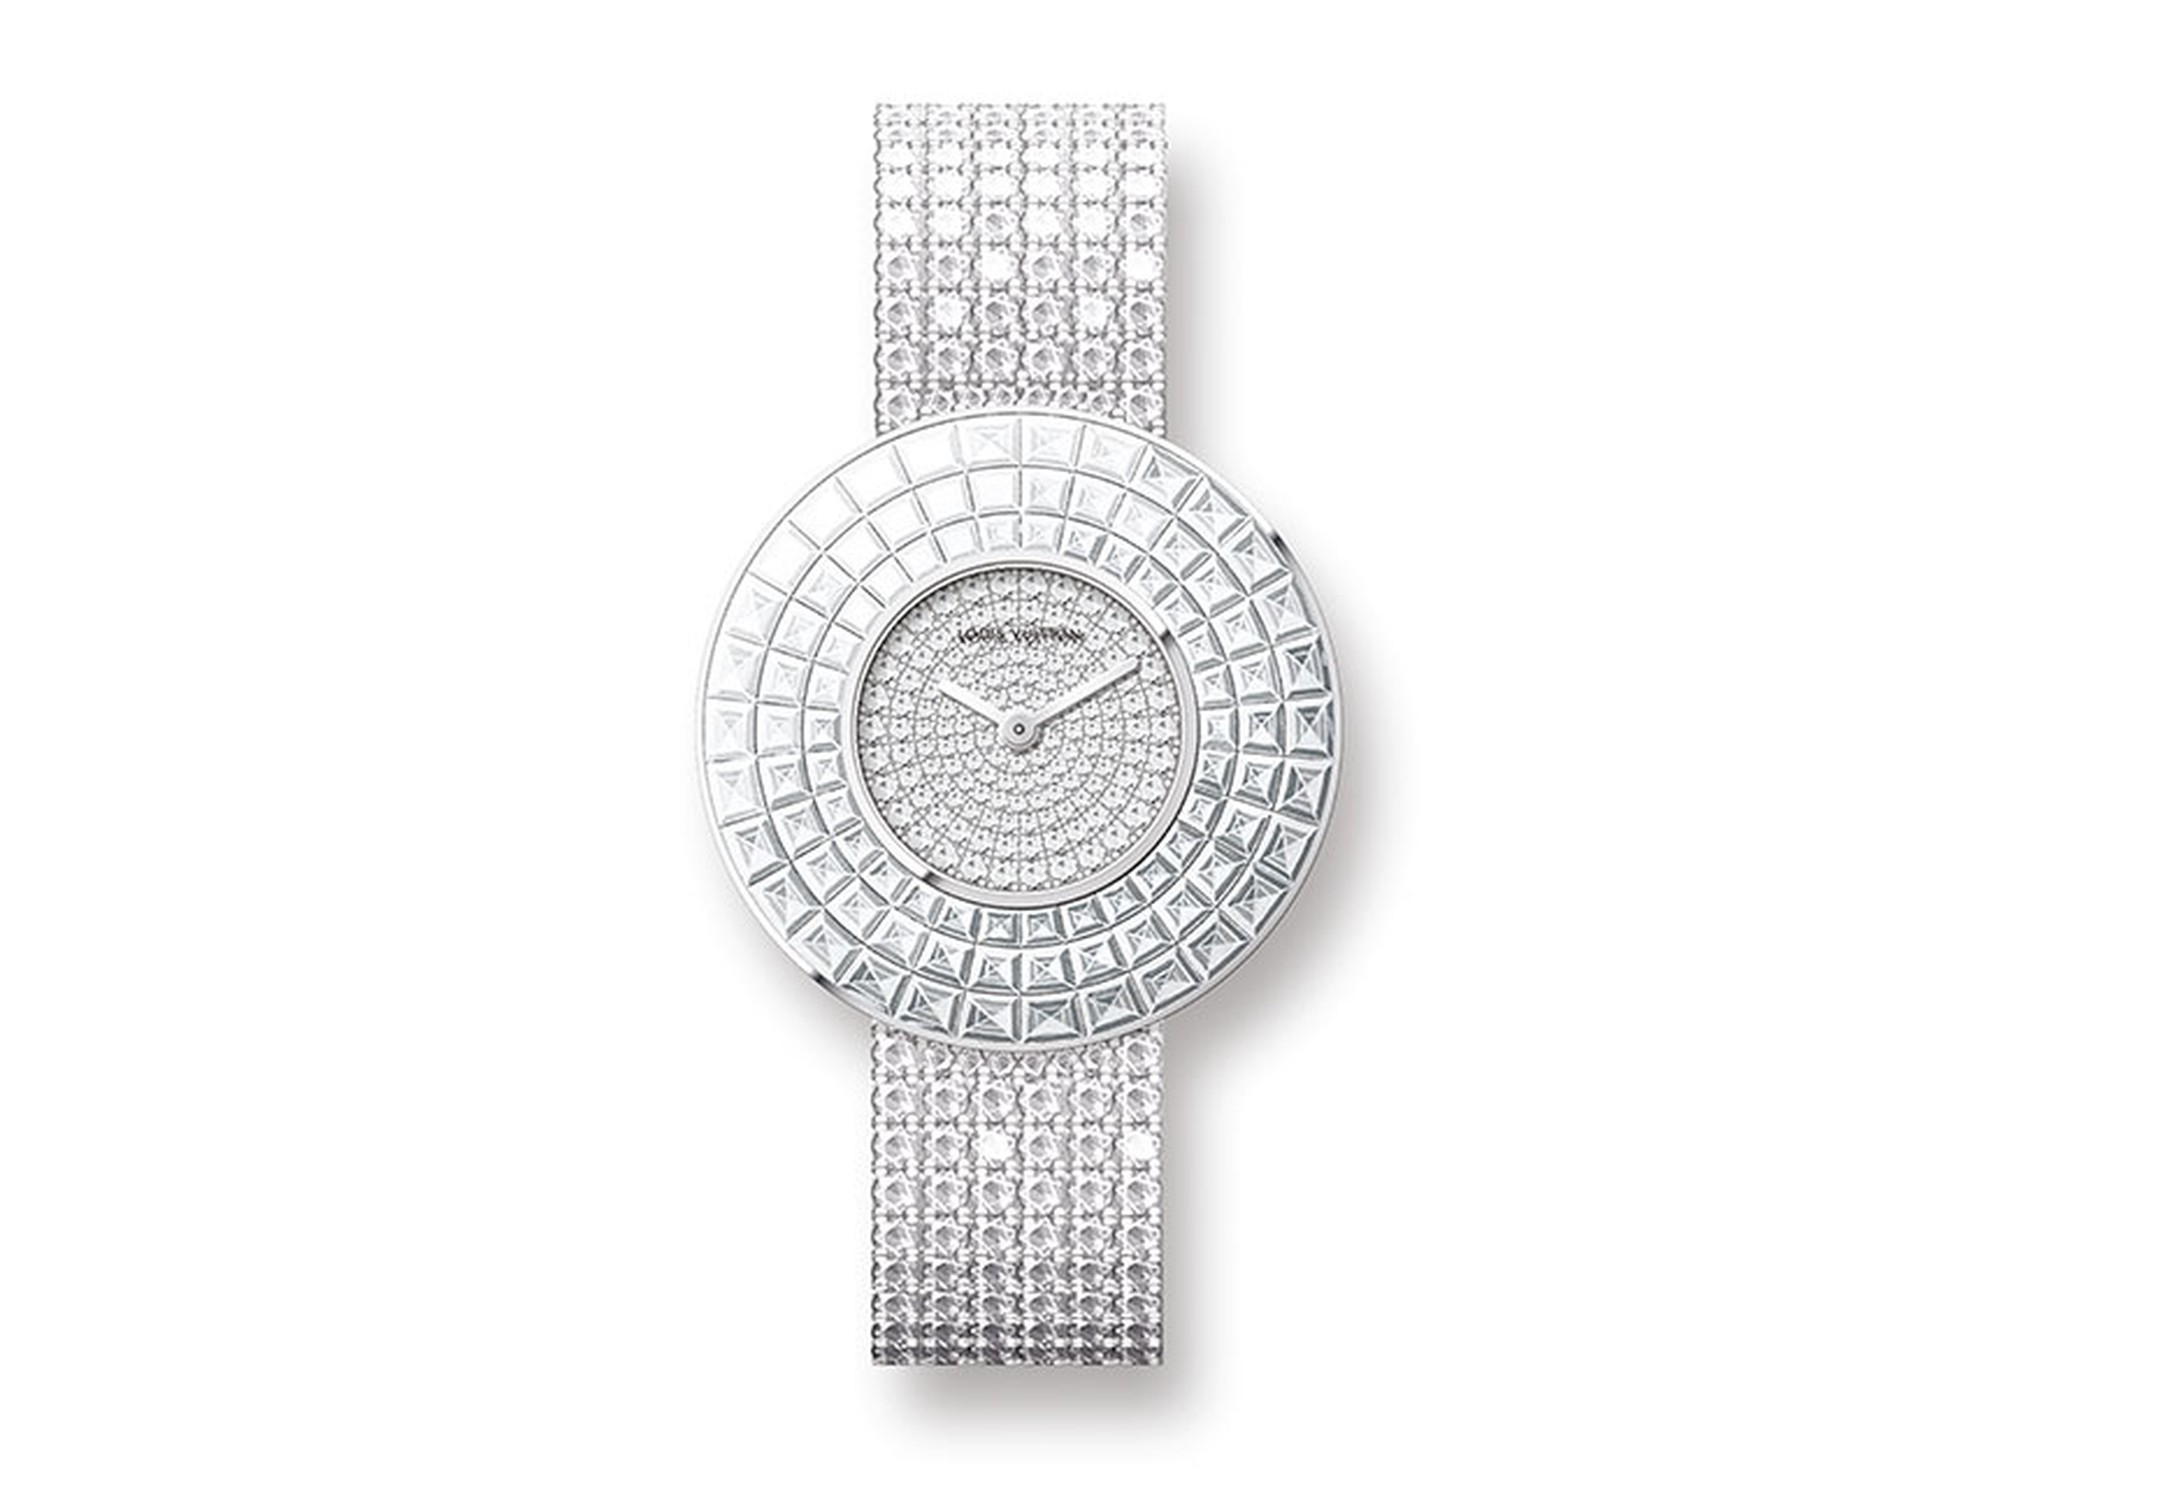 Louis Vuitton white gold Damier Absolu Rivière jewellery watch featuring brilliant-cut diamonds on the dial and bracelet and three rows of invisible set baguette-cut diamonds on the bezel